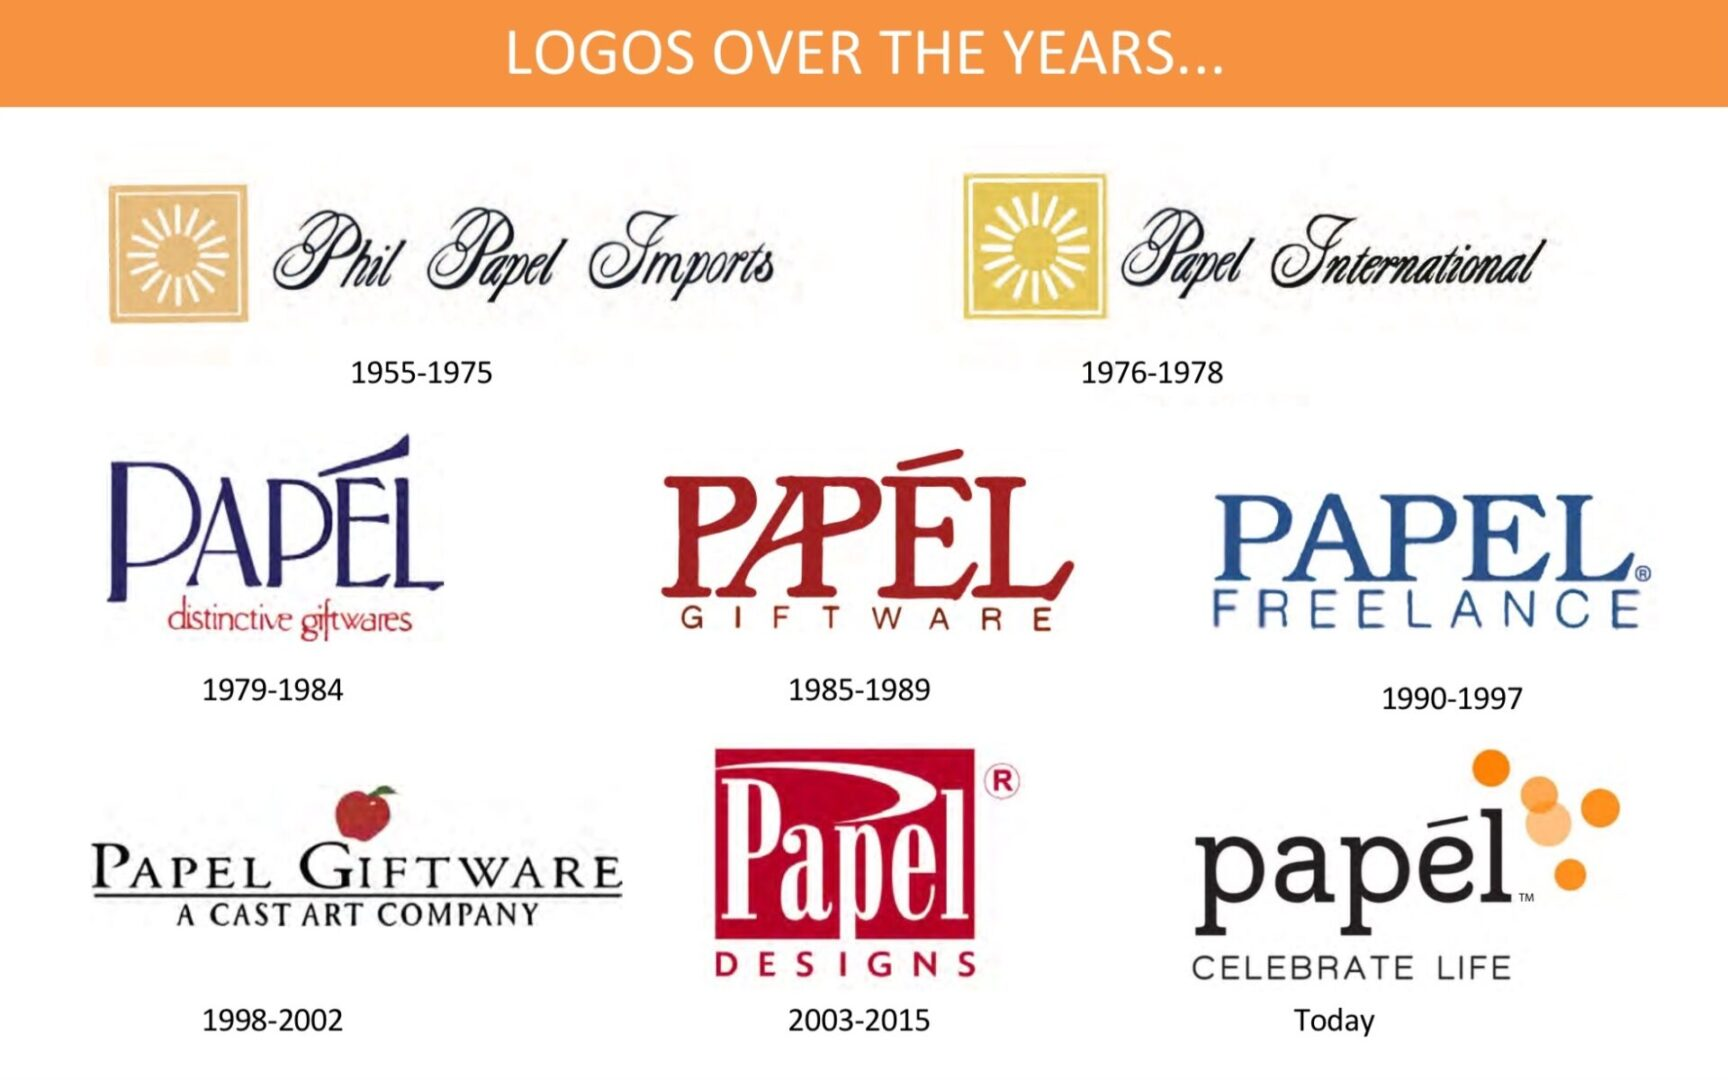 Logos over the years